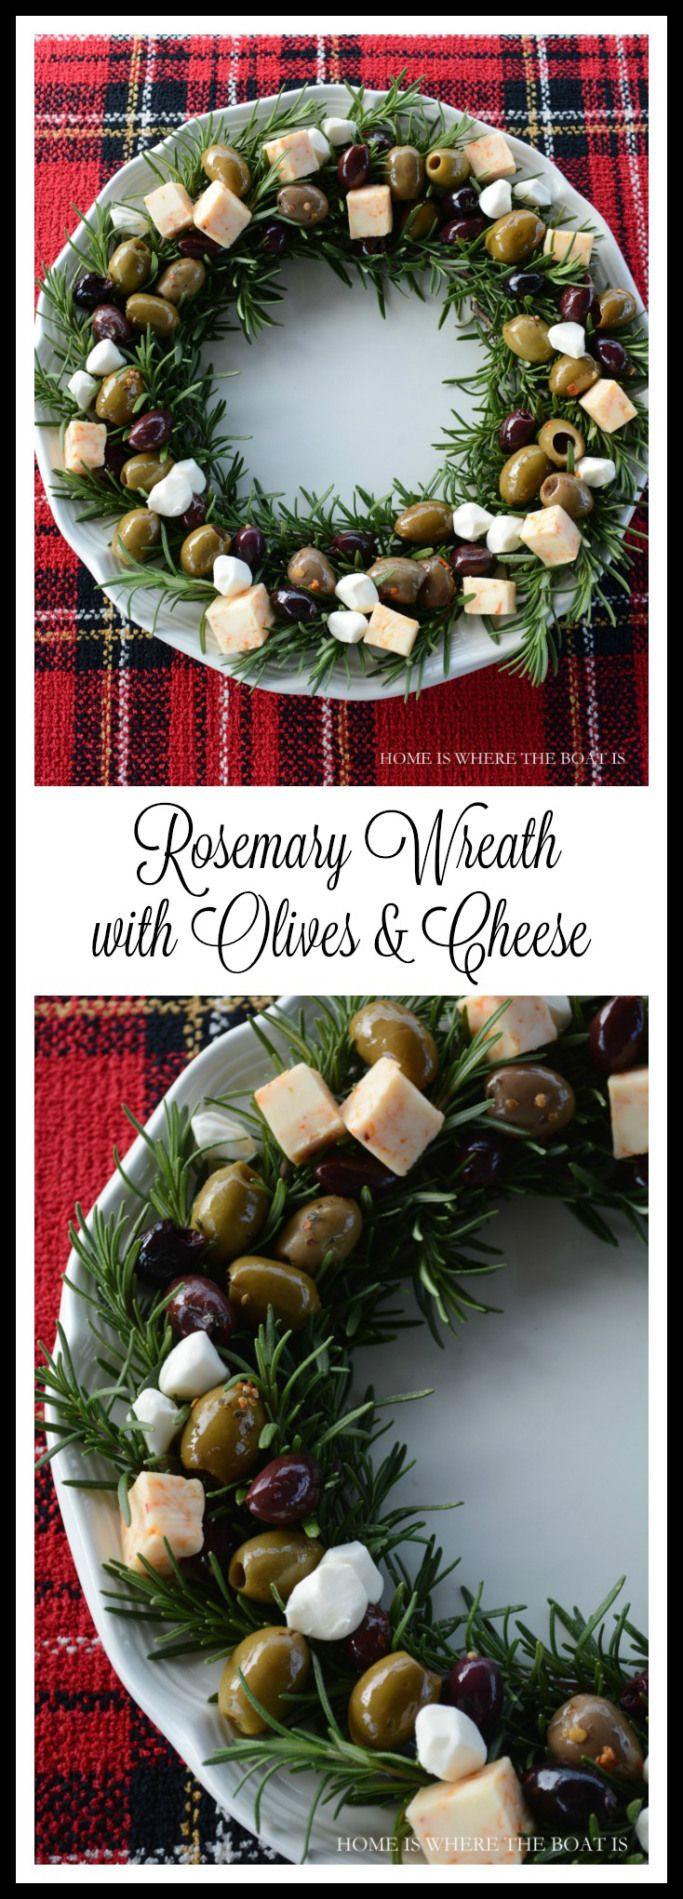 Rosemary Wreath with Olives & Cheese! A festive and easy appetizer for holiday entertaining! | homeiswheretheboatis.net #Christmas #easy #appetizer